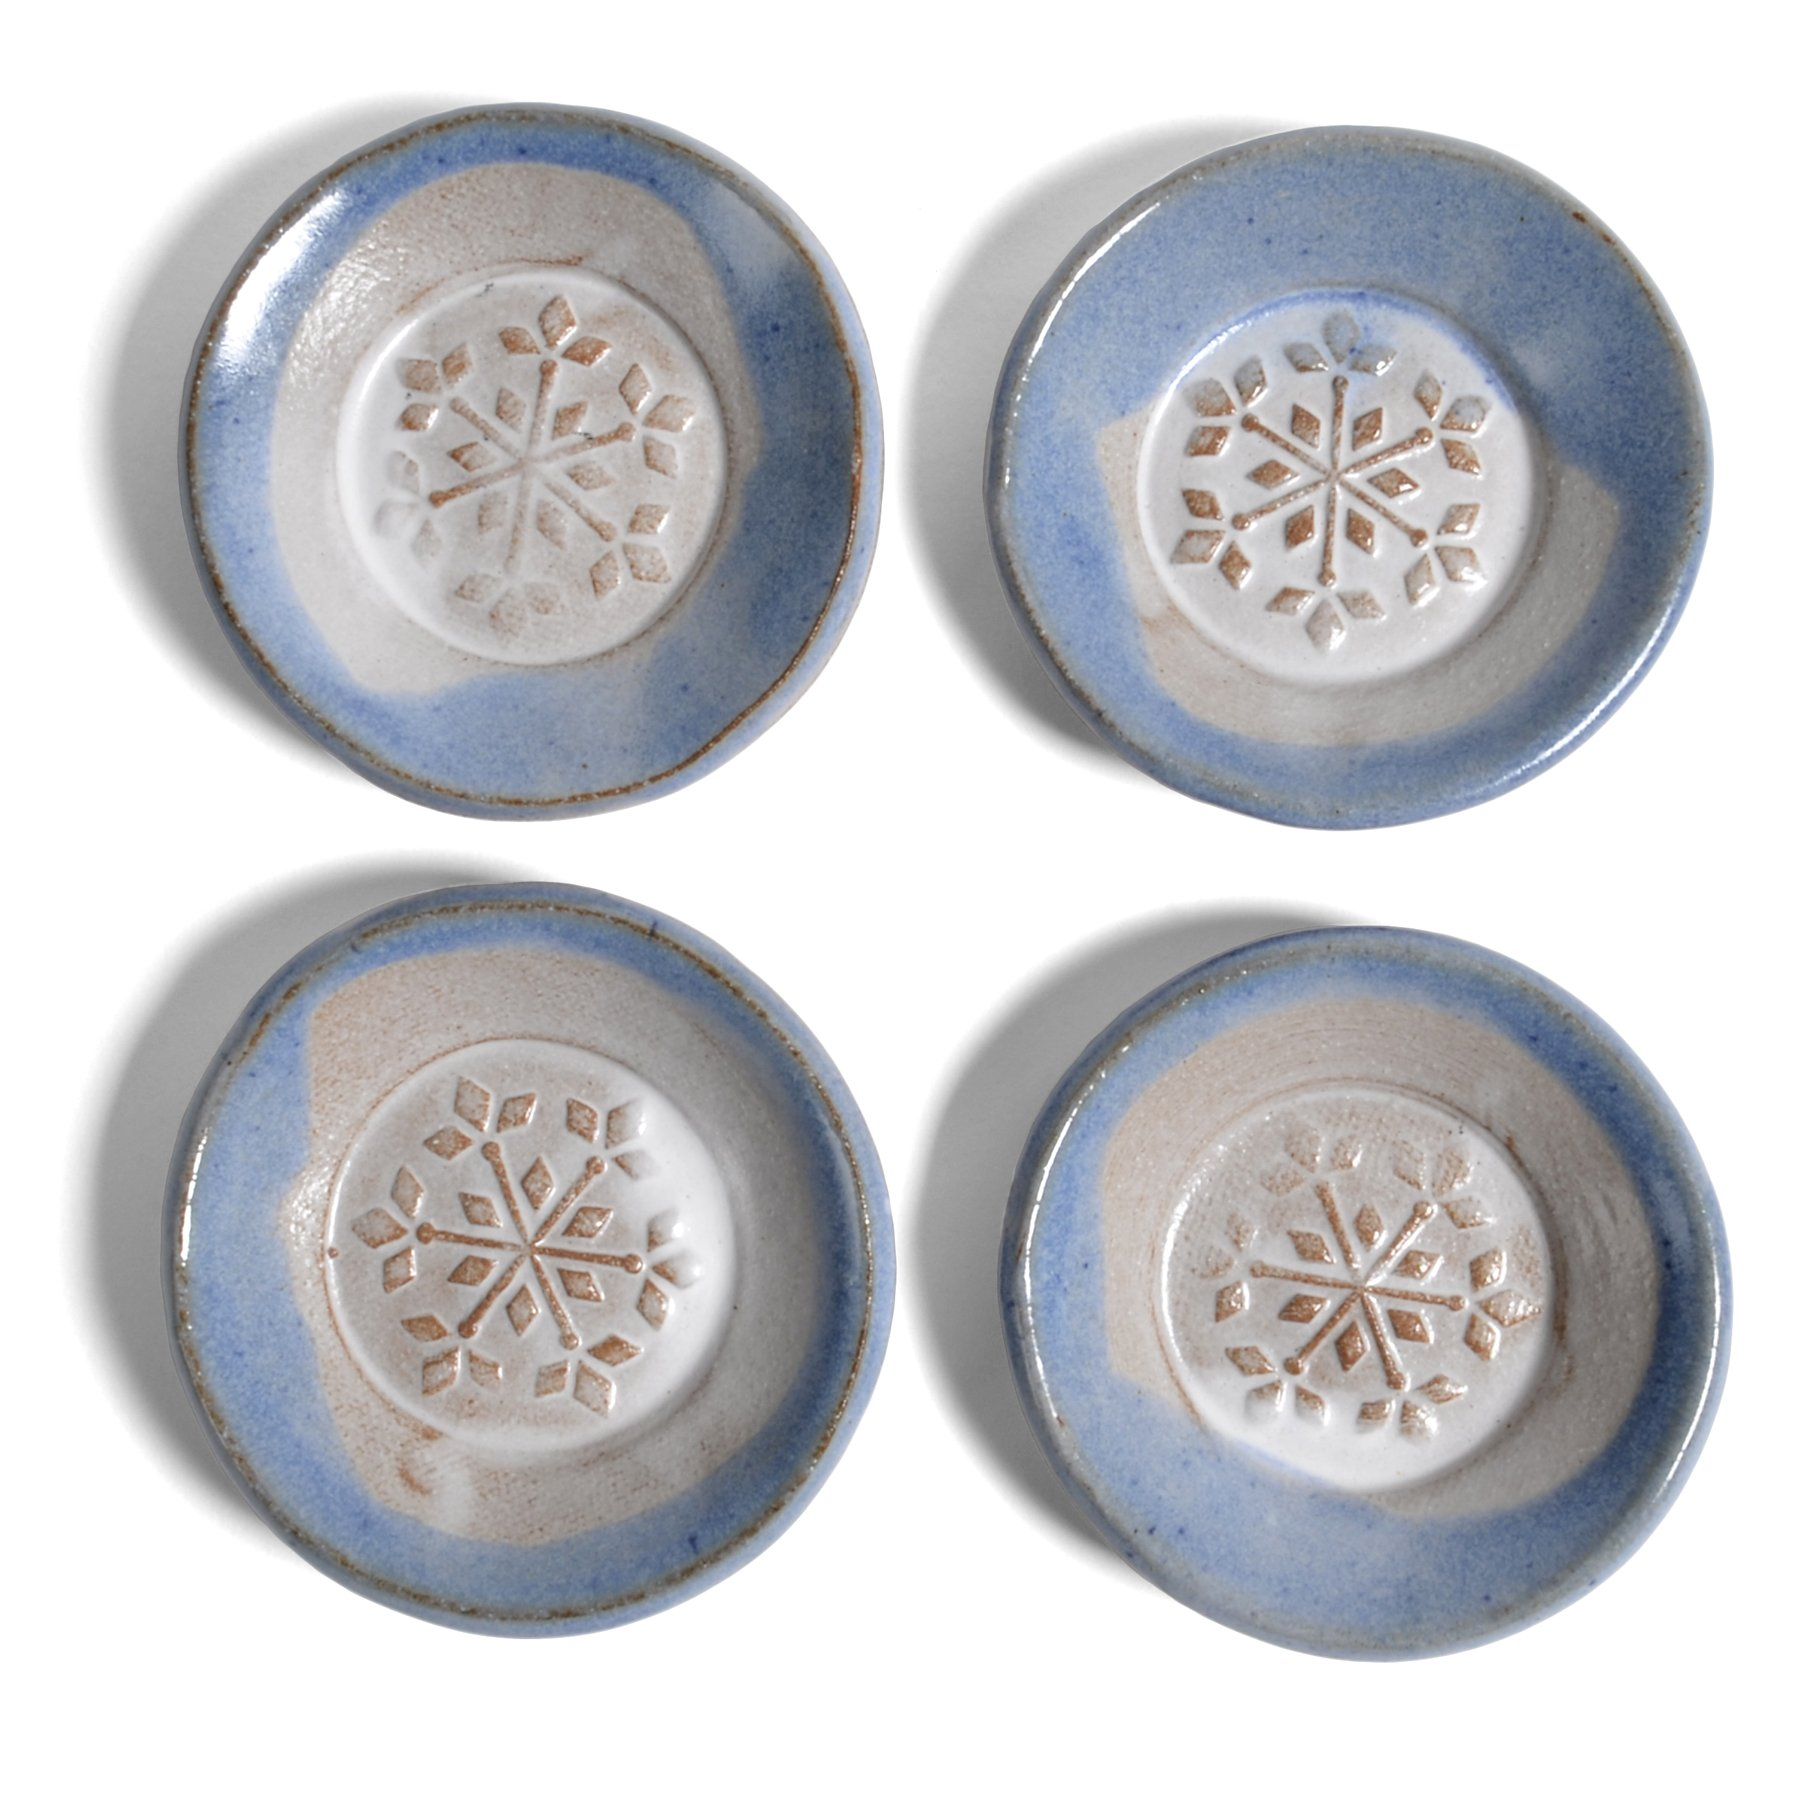 MudWorks Pottery Snowflake Tea Bag Coasters, Blue and White, Set of 4 by MudWorks Pottery